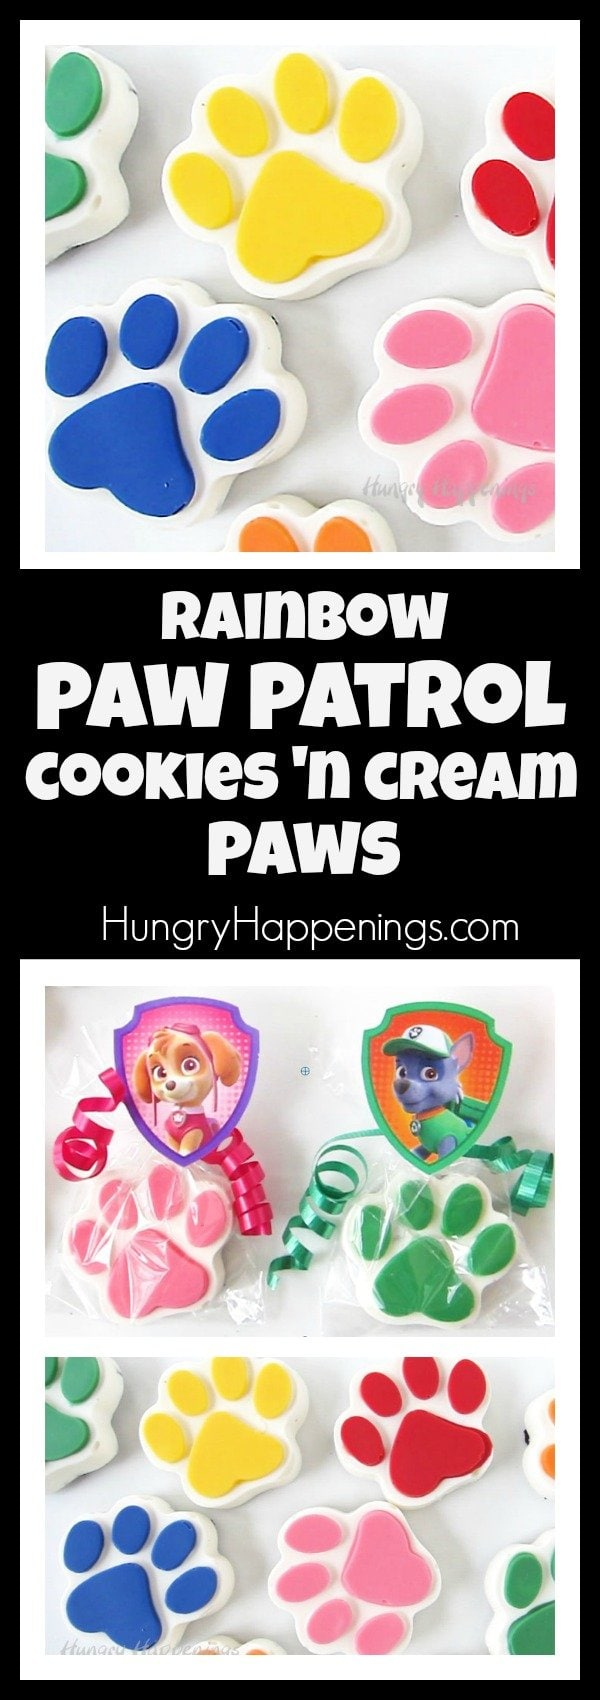 Paw Patrol fans will fall in love with these adorable rainbow colored Cookies 'n Cream Paws. Serve them at your Paw Patrol party or pass them out as party favors.